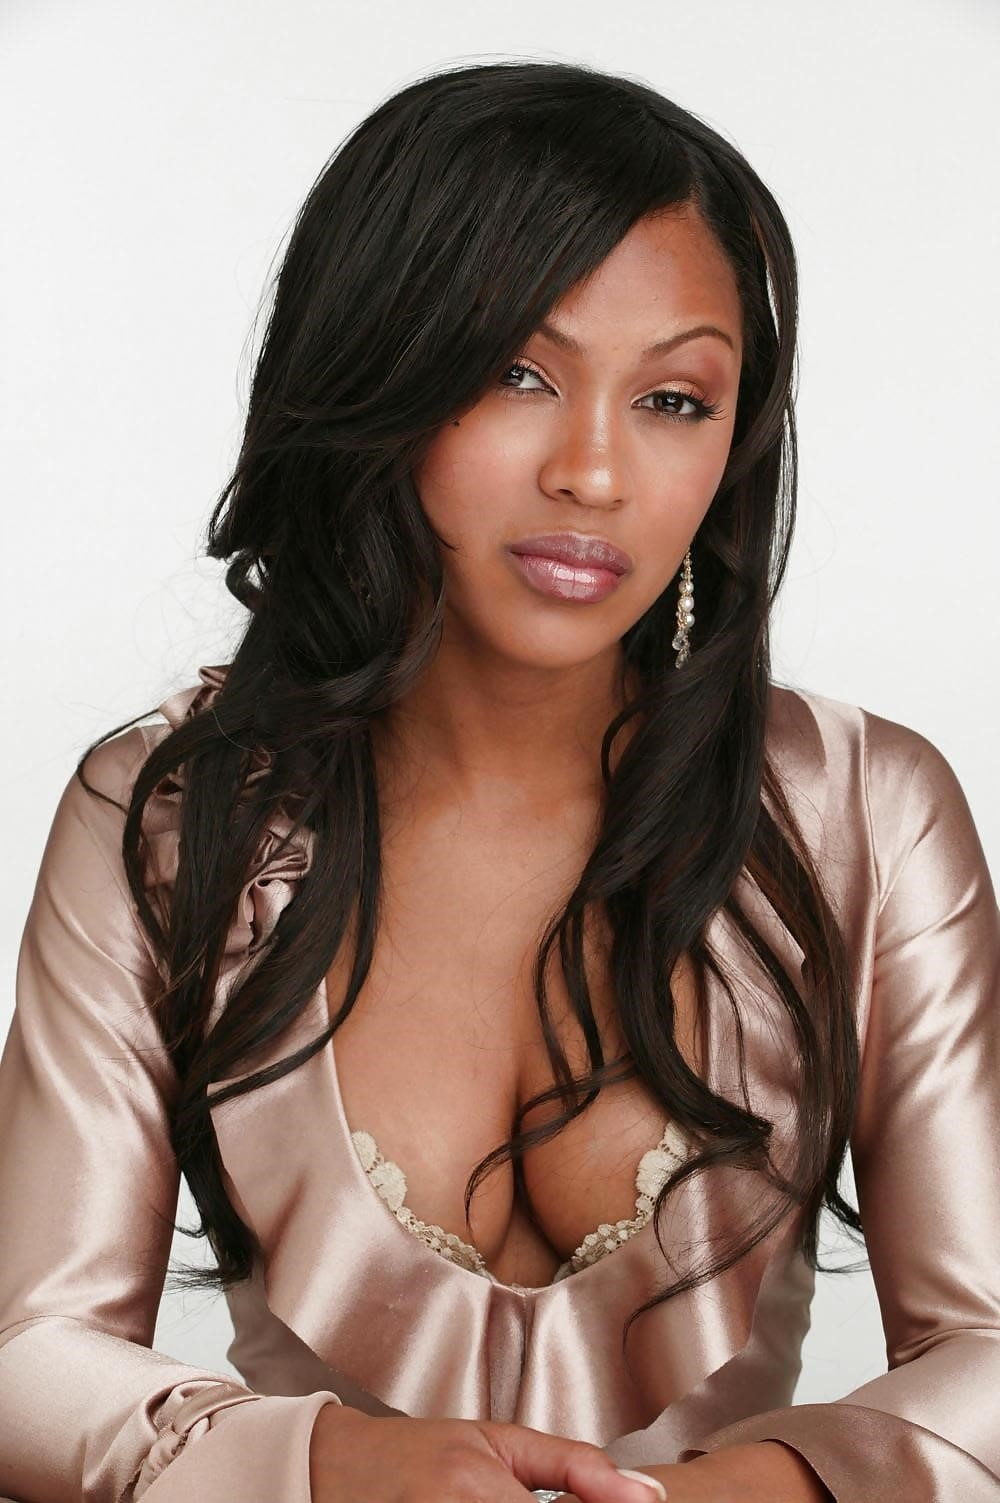 Meagan good nude pictures-7822